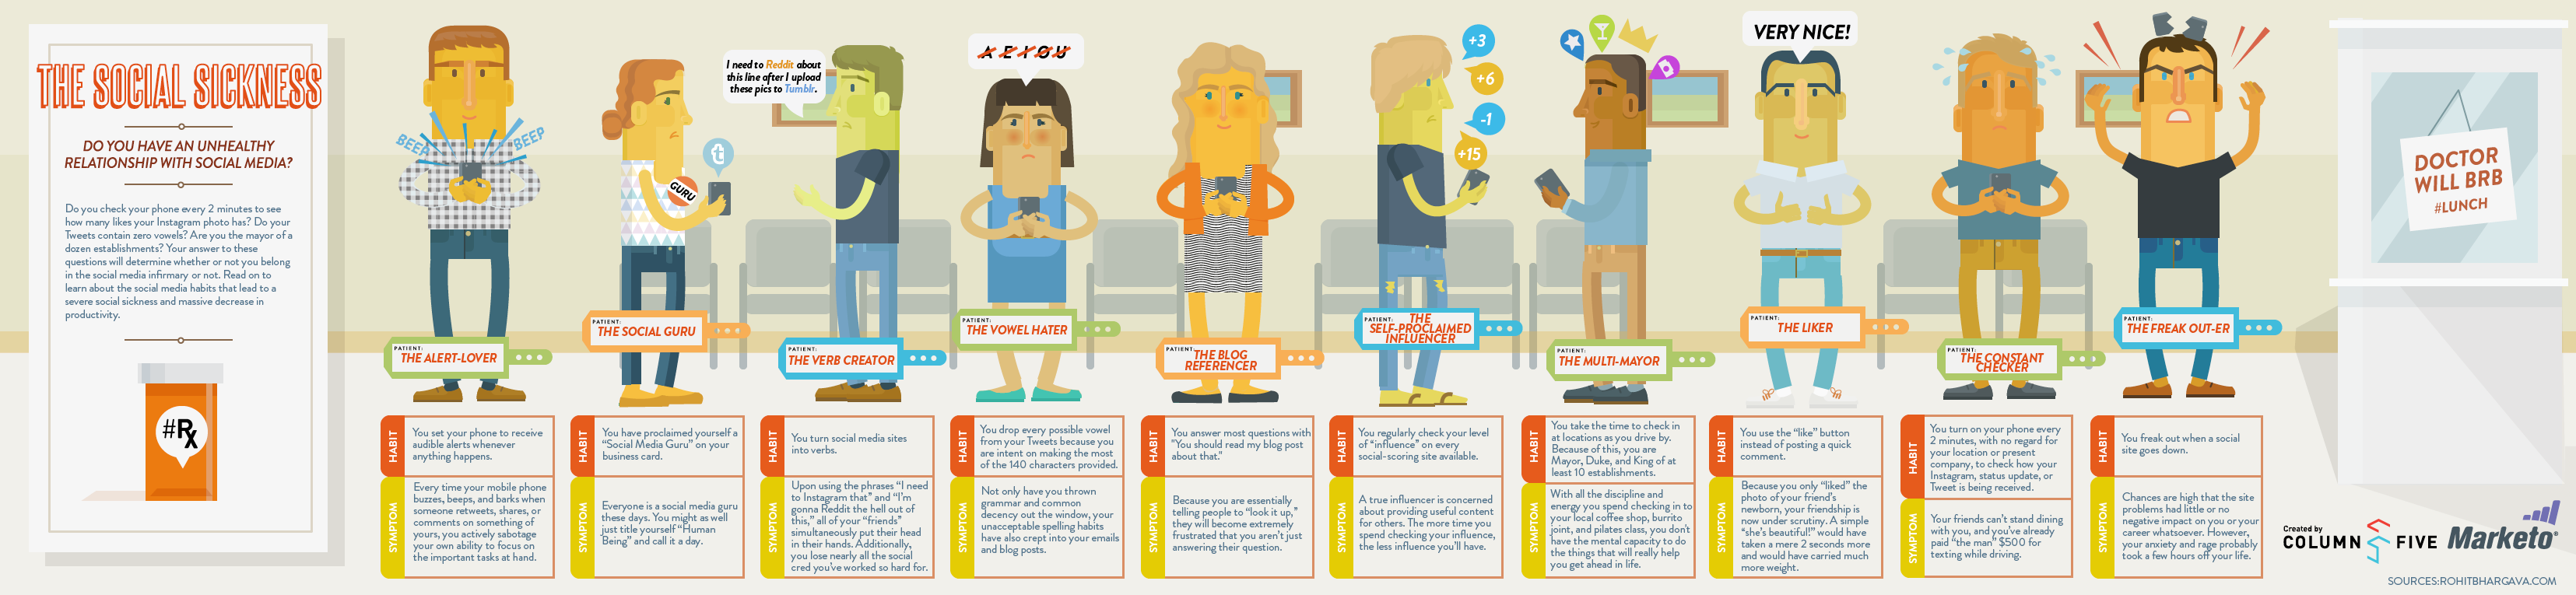 social-media-addiction-personalities-infographic